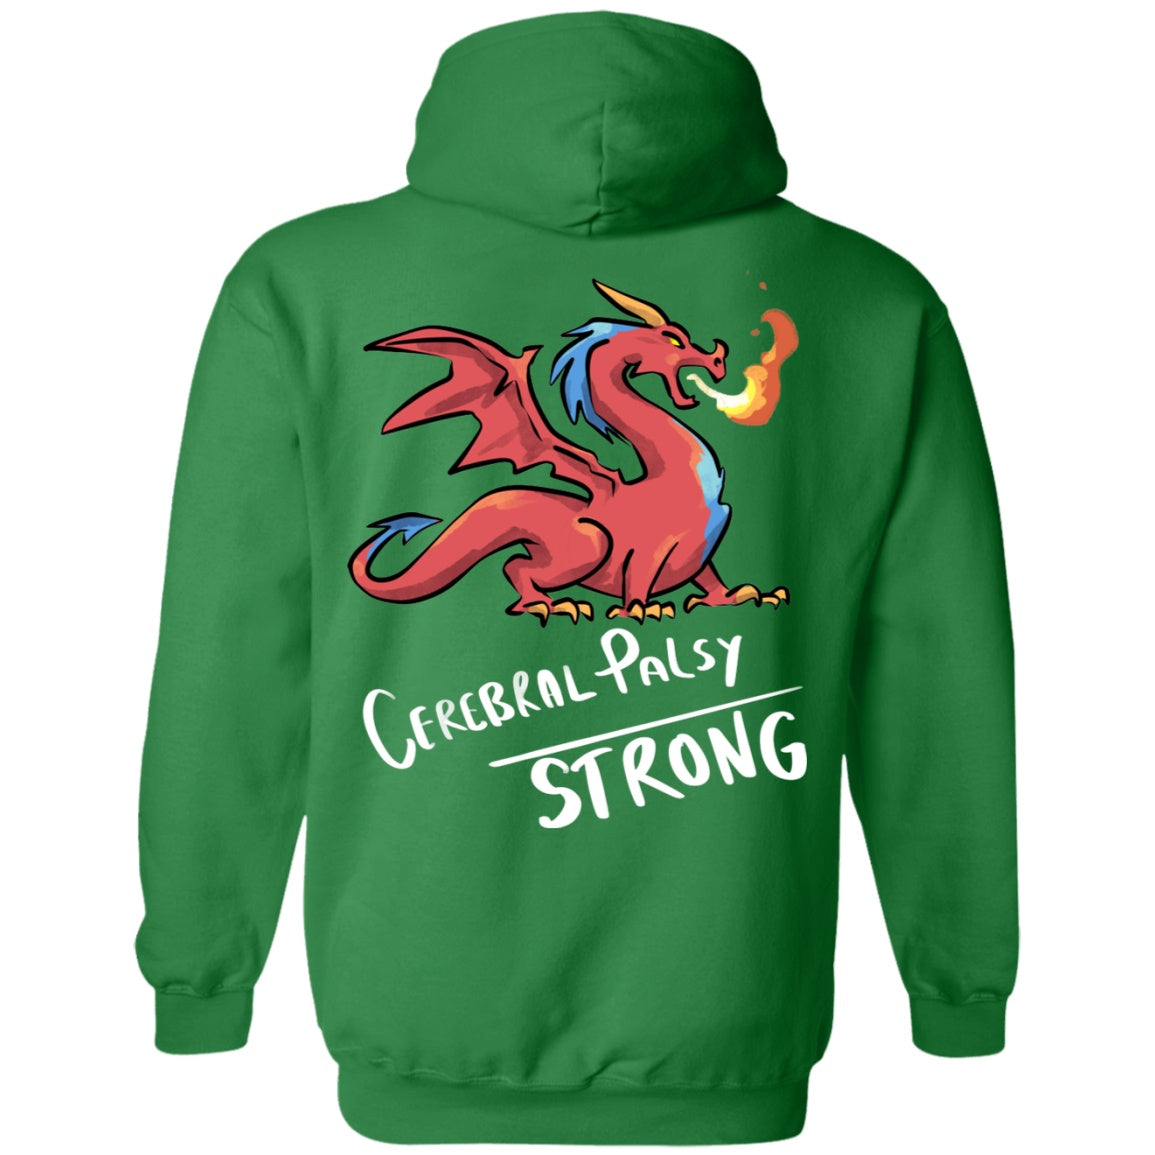 Cerebral Palsy Strong Dragon Pullover Hoodie 8 oz. - The Unchargeables